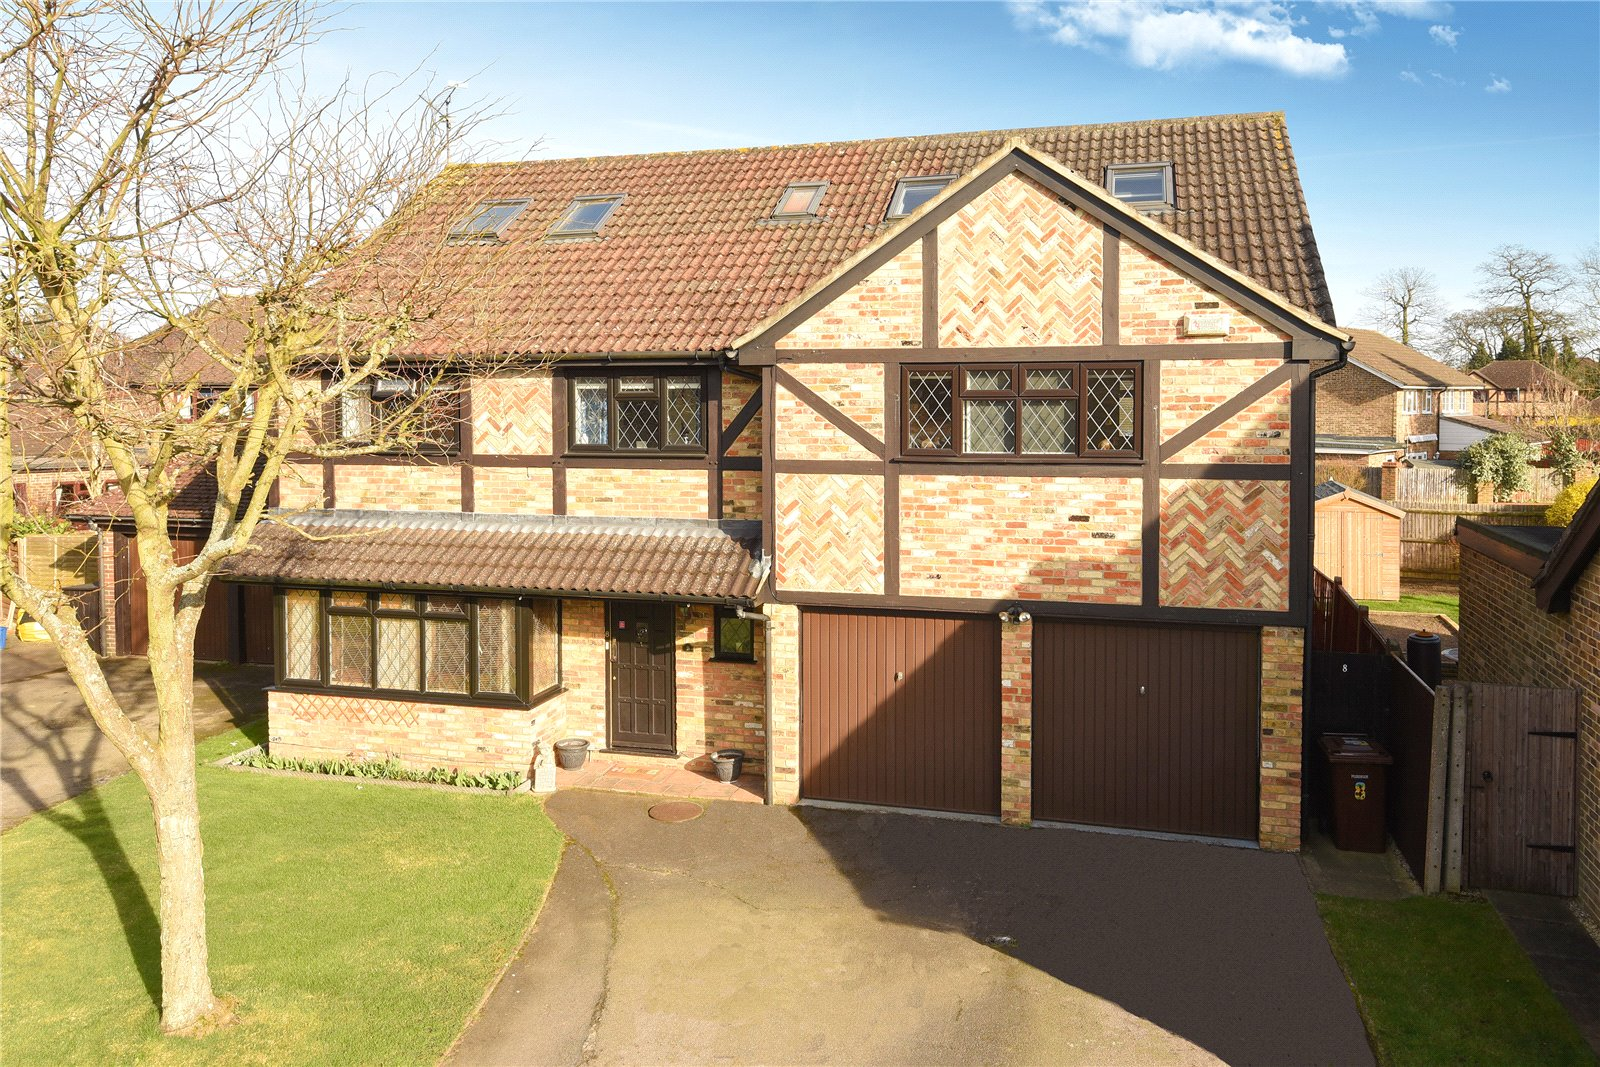 7 Bedrooms House for sale in Fennel Close, Farnborough, Hampshire, GU14